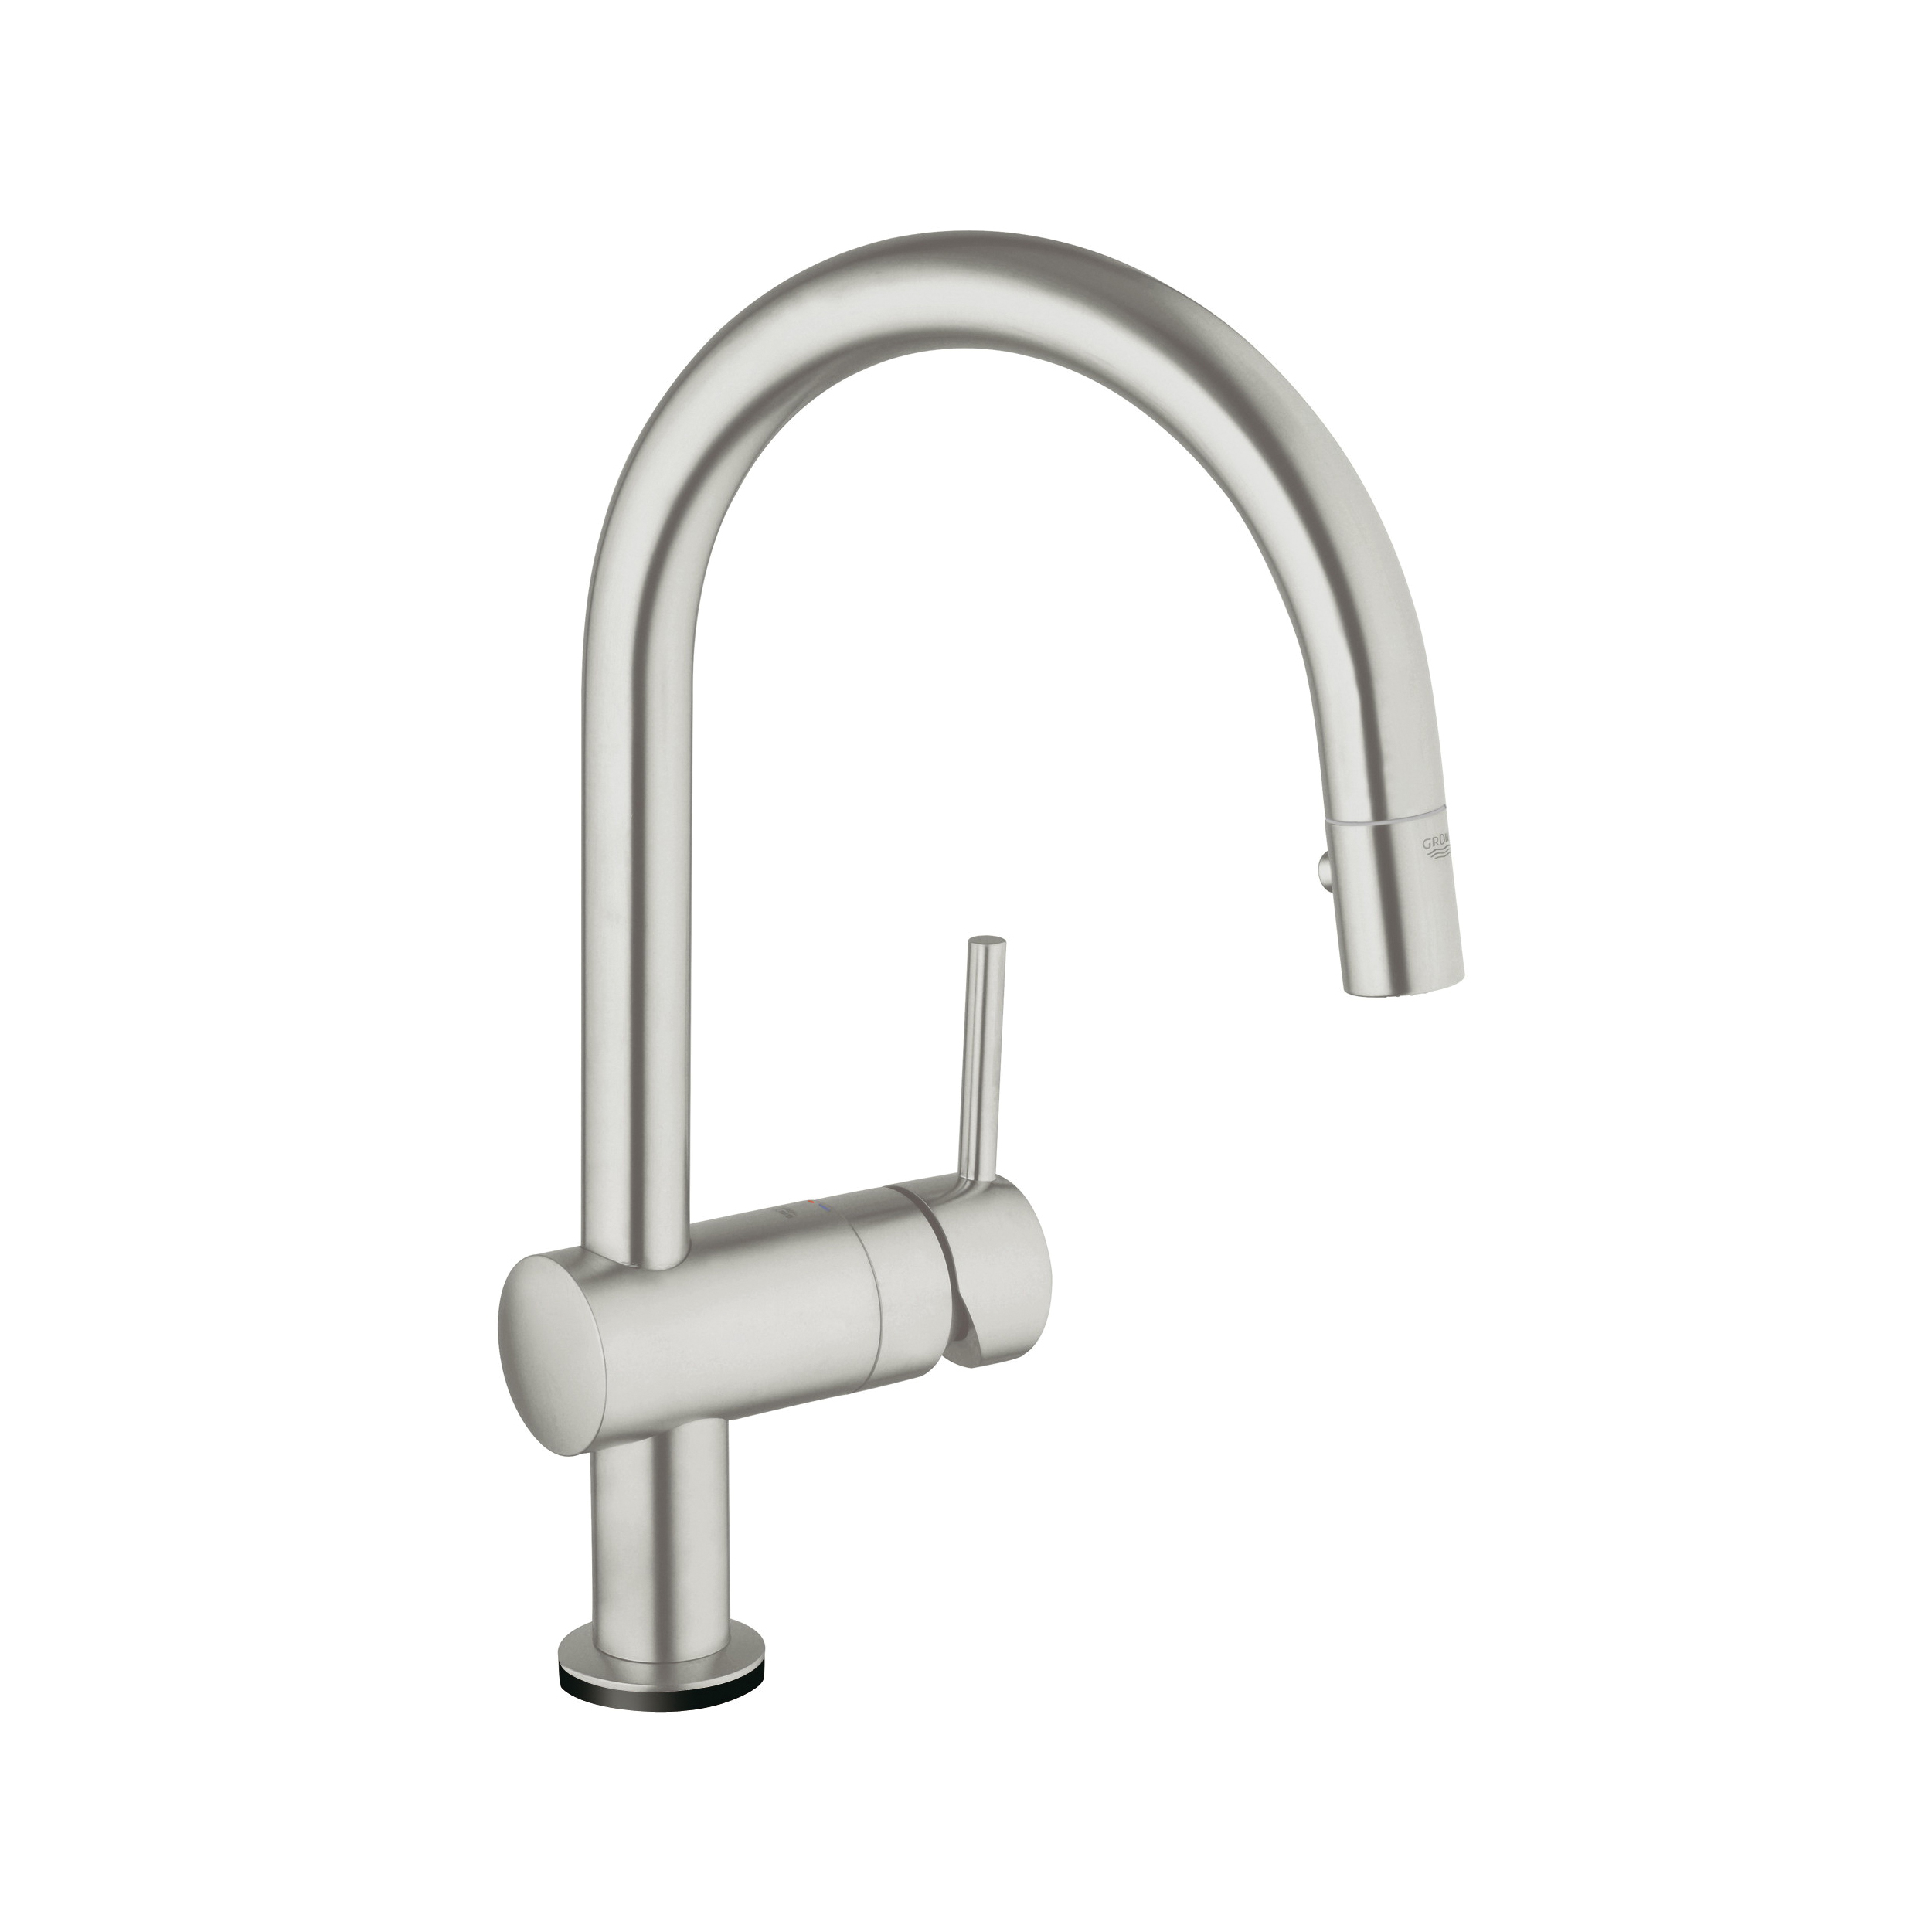 GROHE 31359DC1 Minta Kitchen Faucet With Dual Spray, 1.75 gpm, 1 Faucet Hole, SuperSteel, 1 Handle, Import, Residential